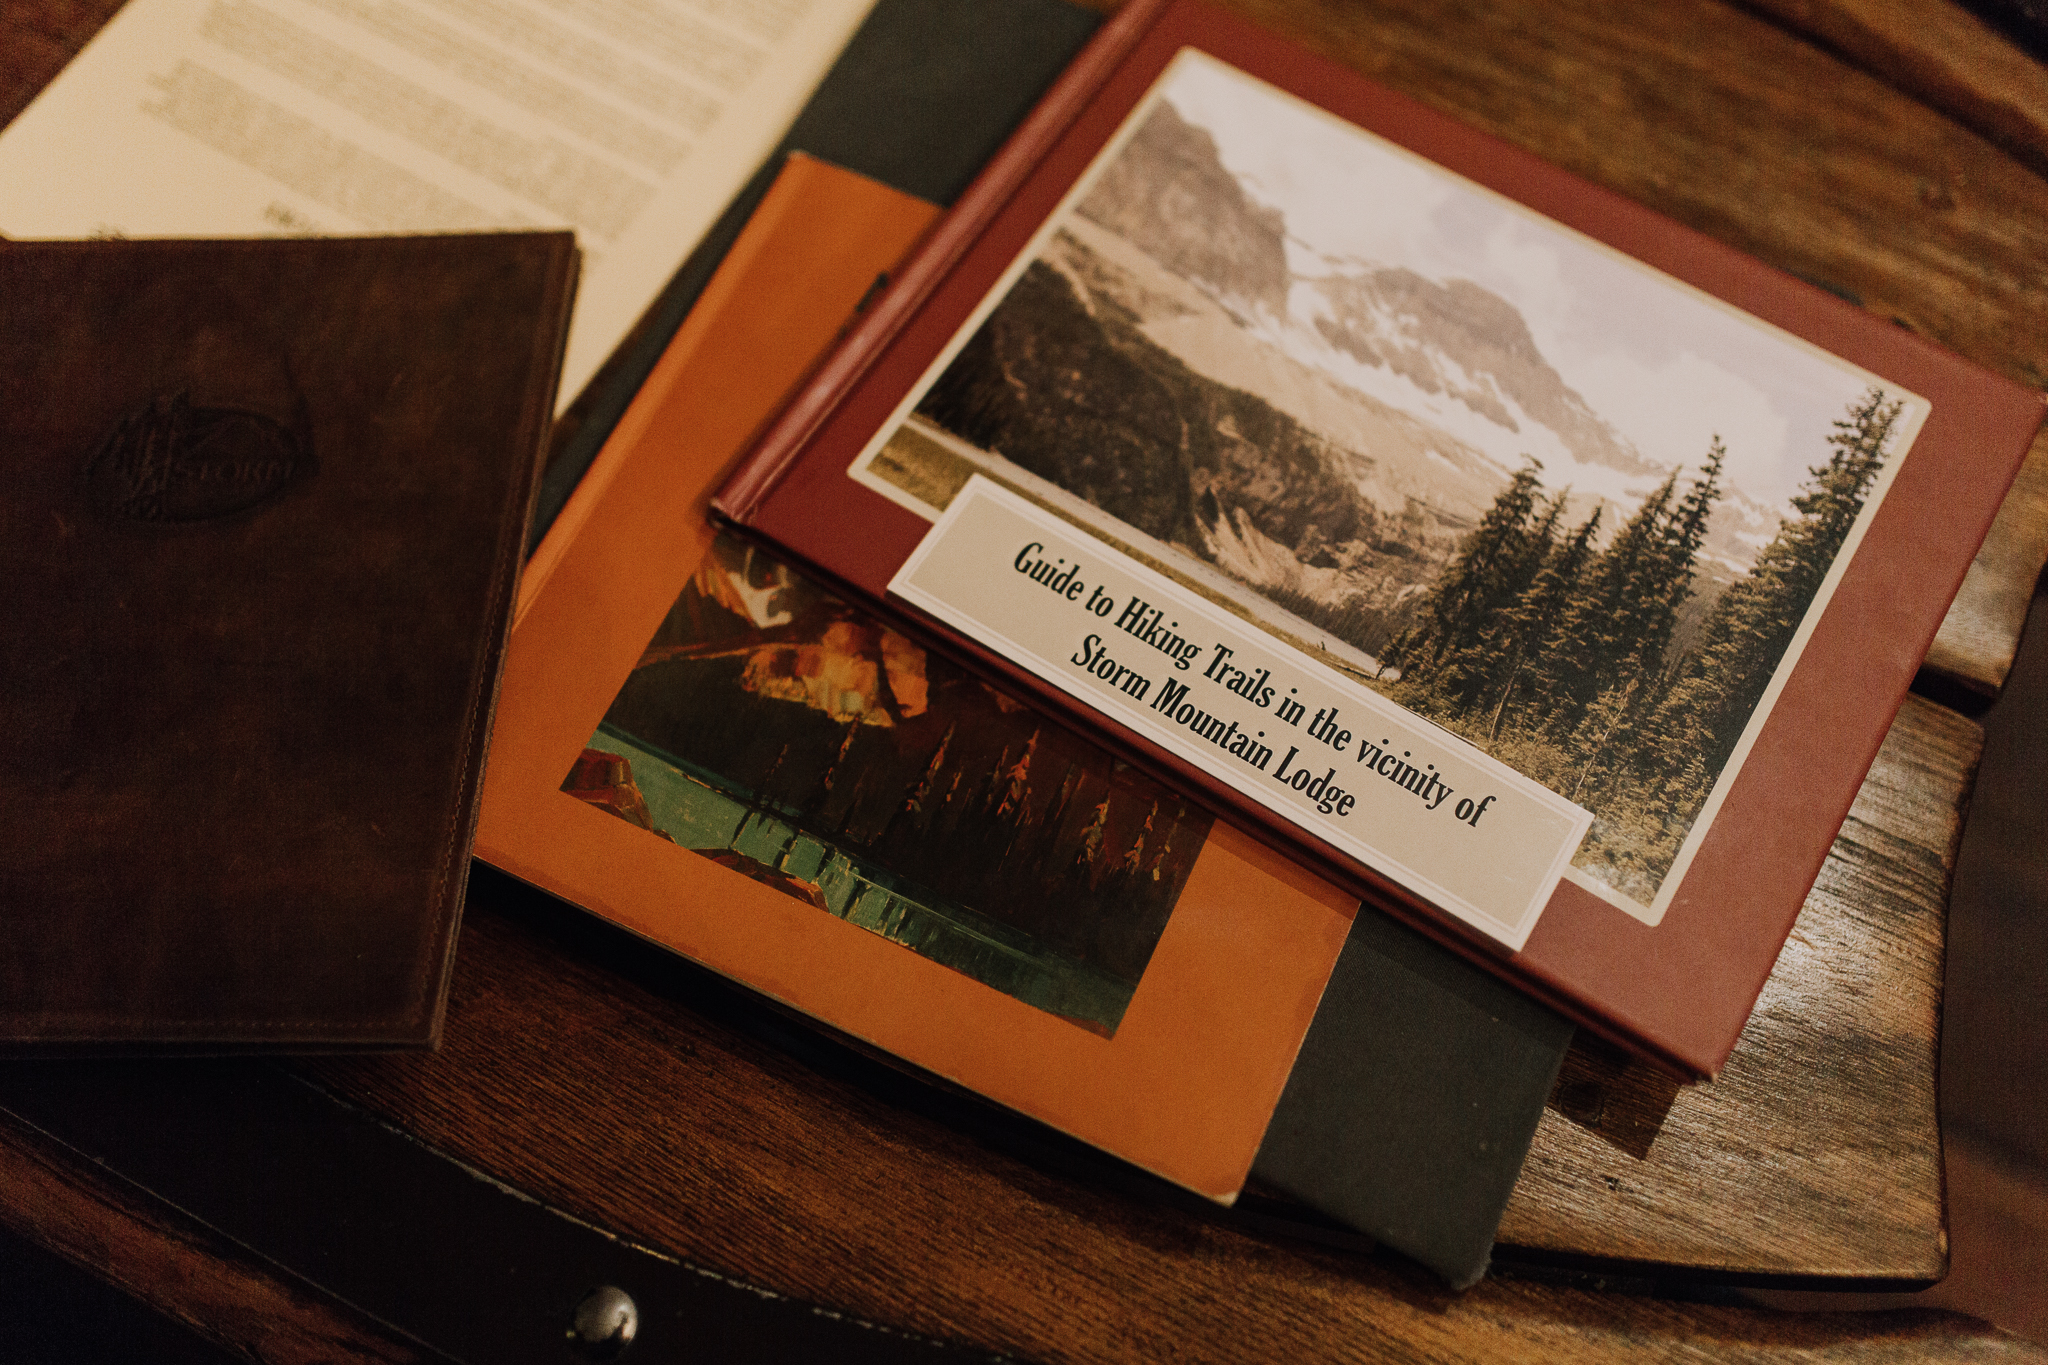 """Guide to Hiking Trails in the vicinity of Storm Mountain Lodge"" book on coffee table"